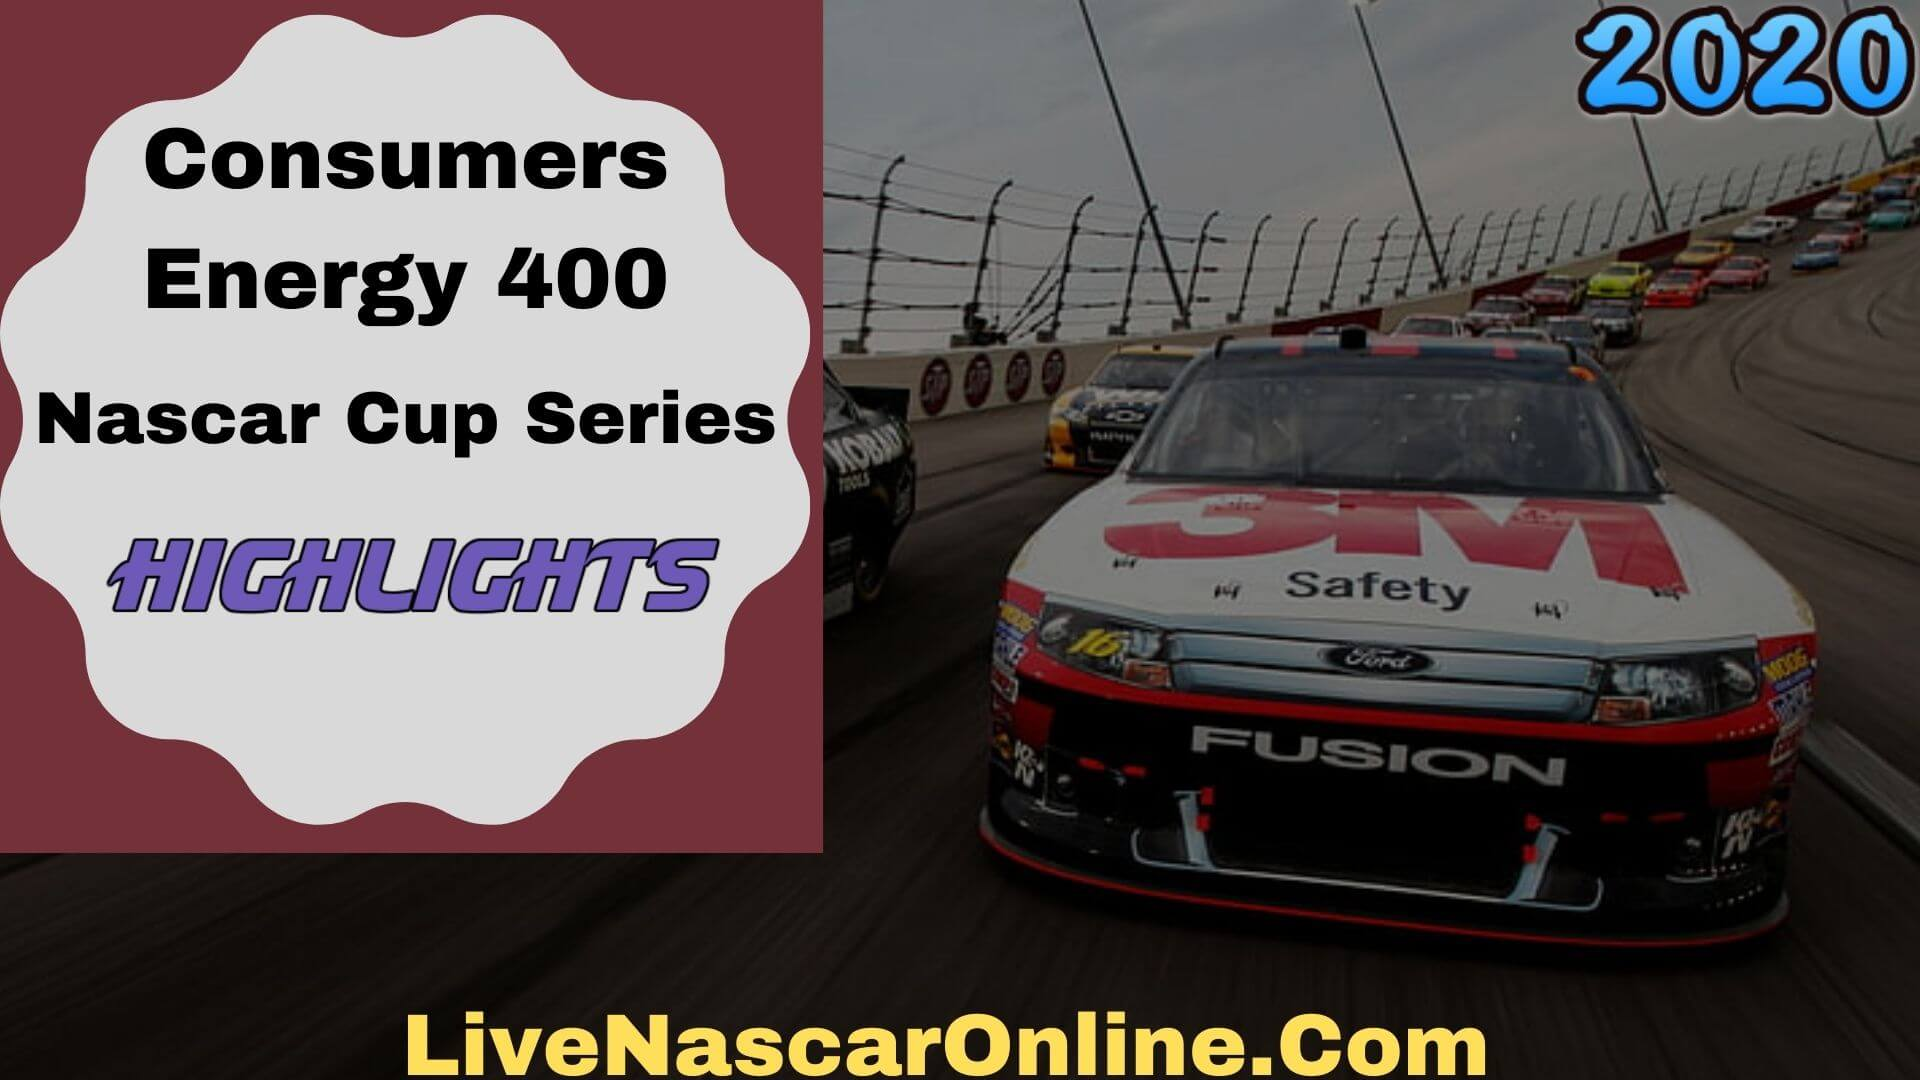 Consumers Energy 400 Nascar Cup Series Highlights 2020